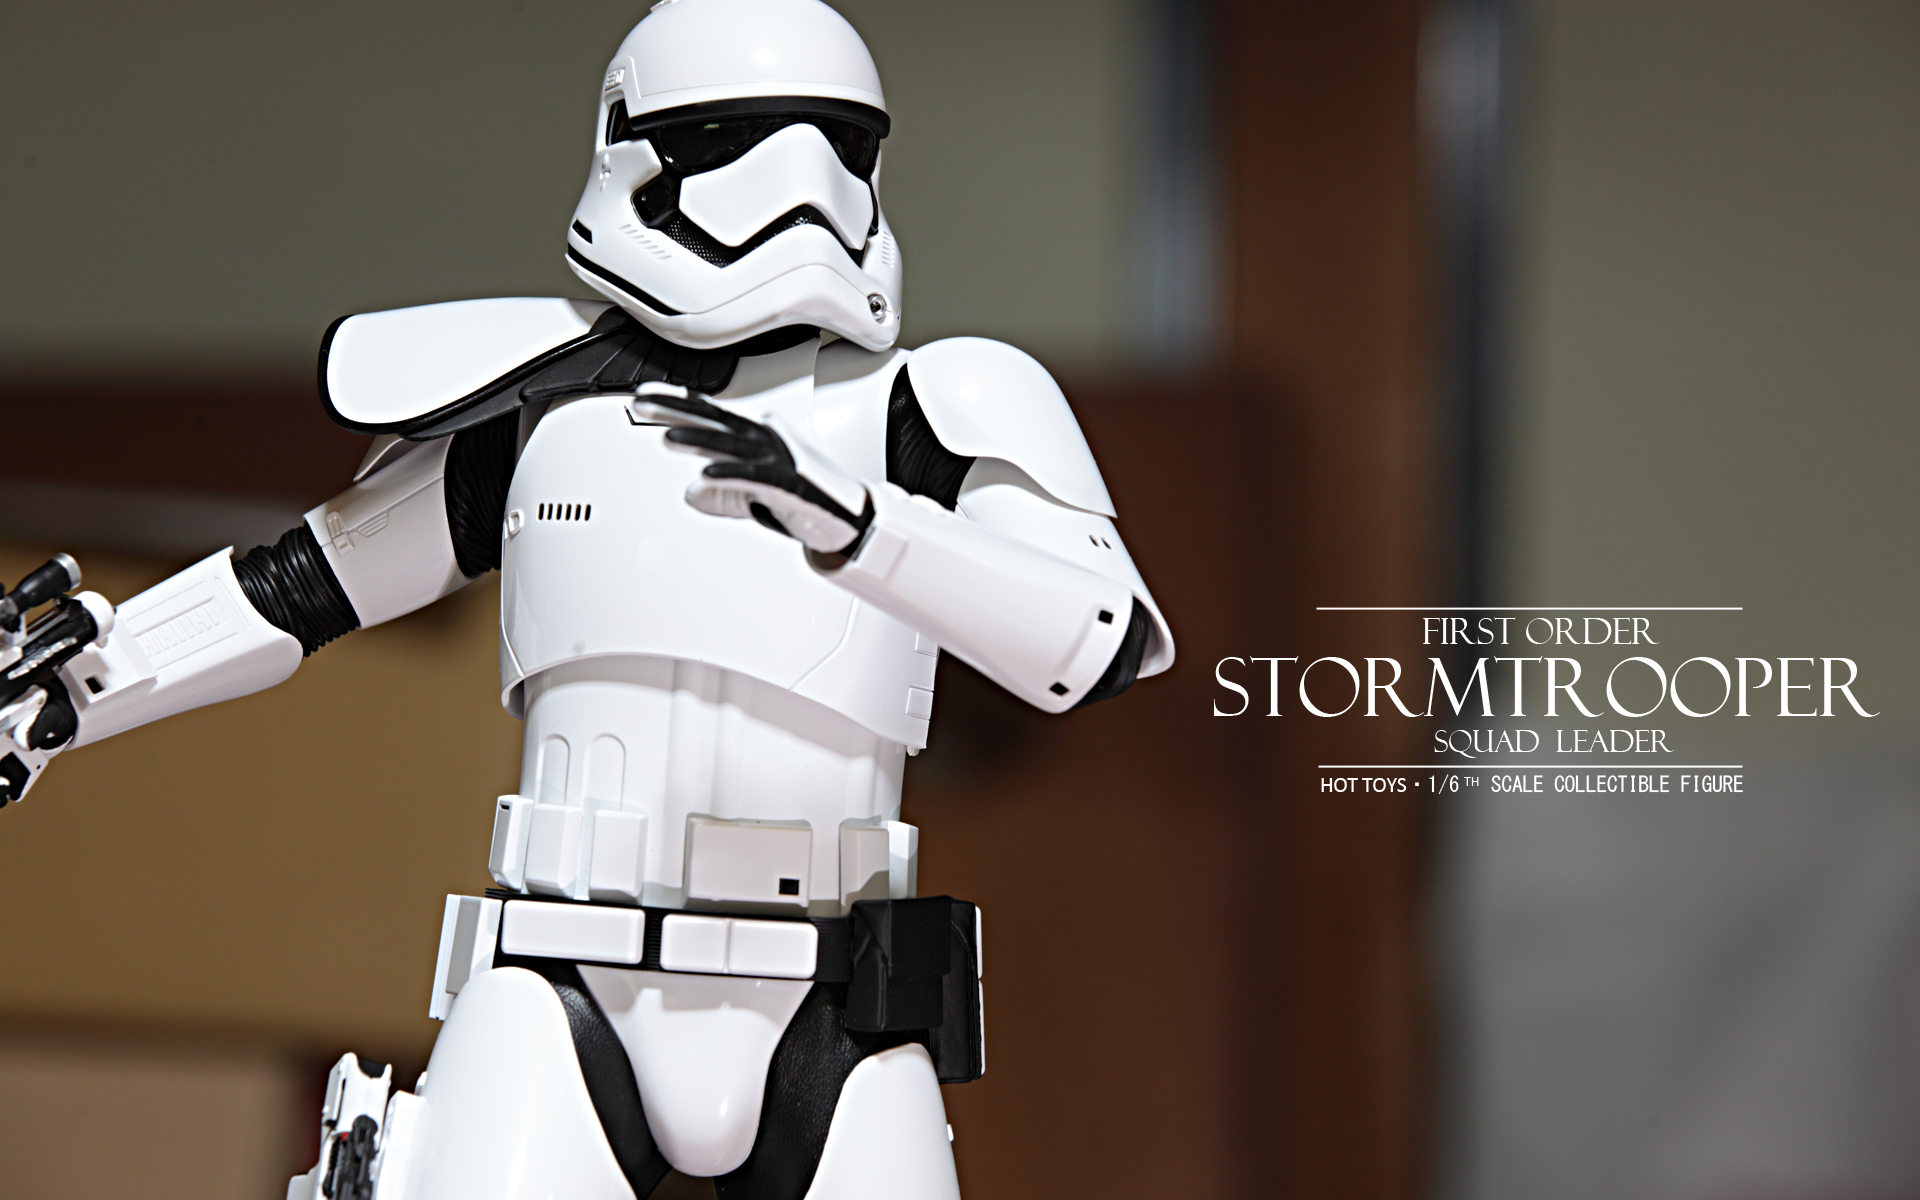 hottoys-star-wars-the-force-awakens-first-order-stormtrooper-Squad-Leader-picture01hottoys-star-wars-the-force-awakens-first-order-stormtrooper-Squad-Leader-picture08